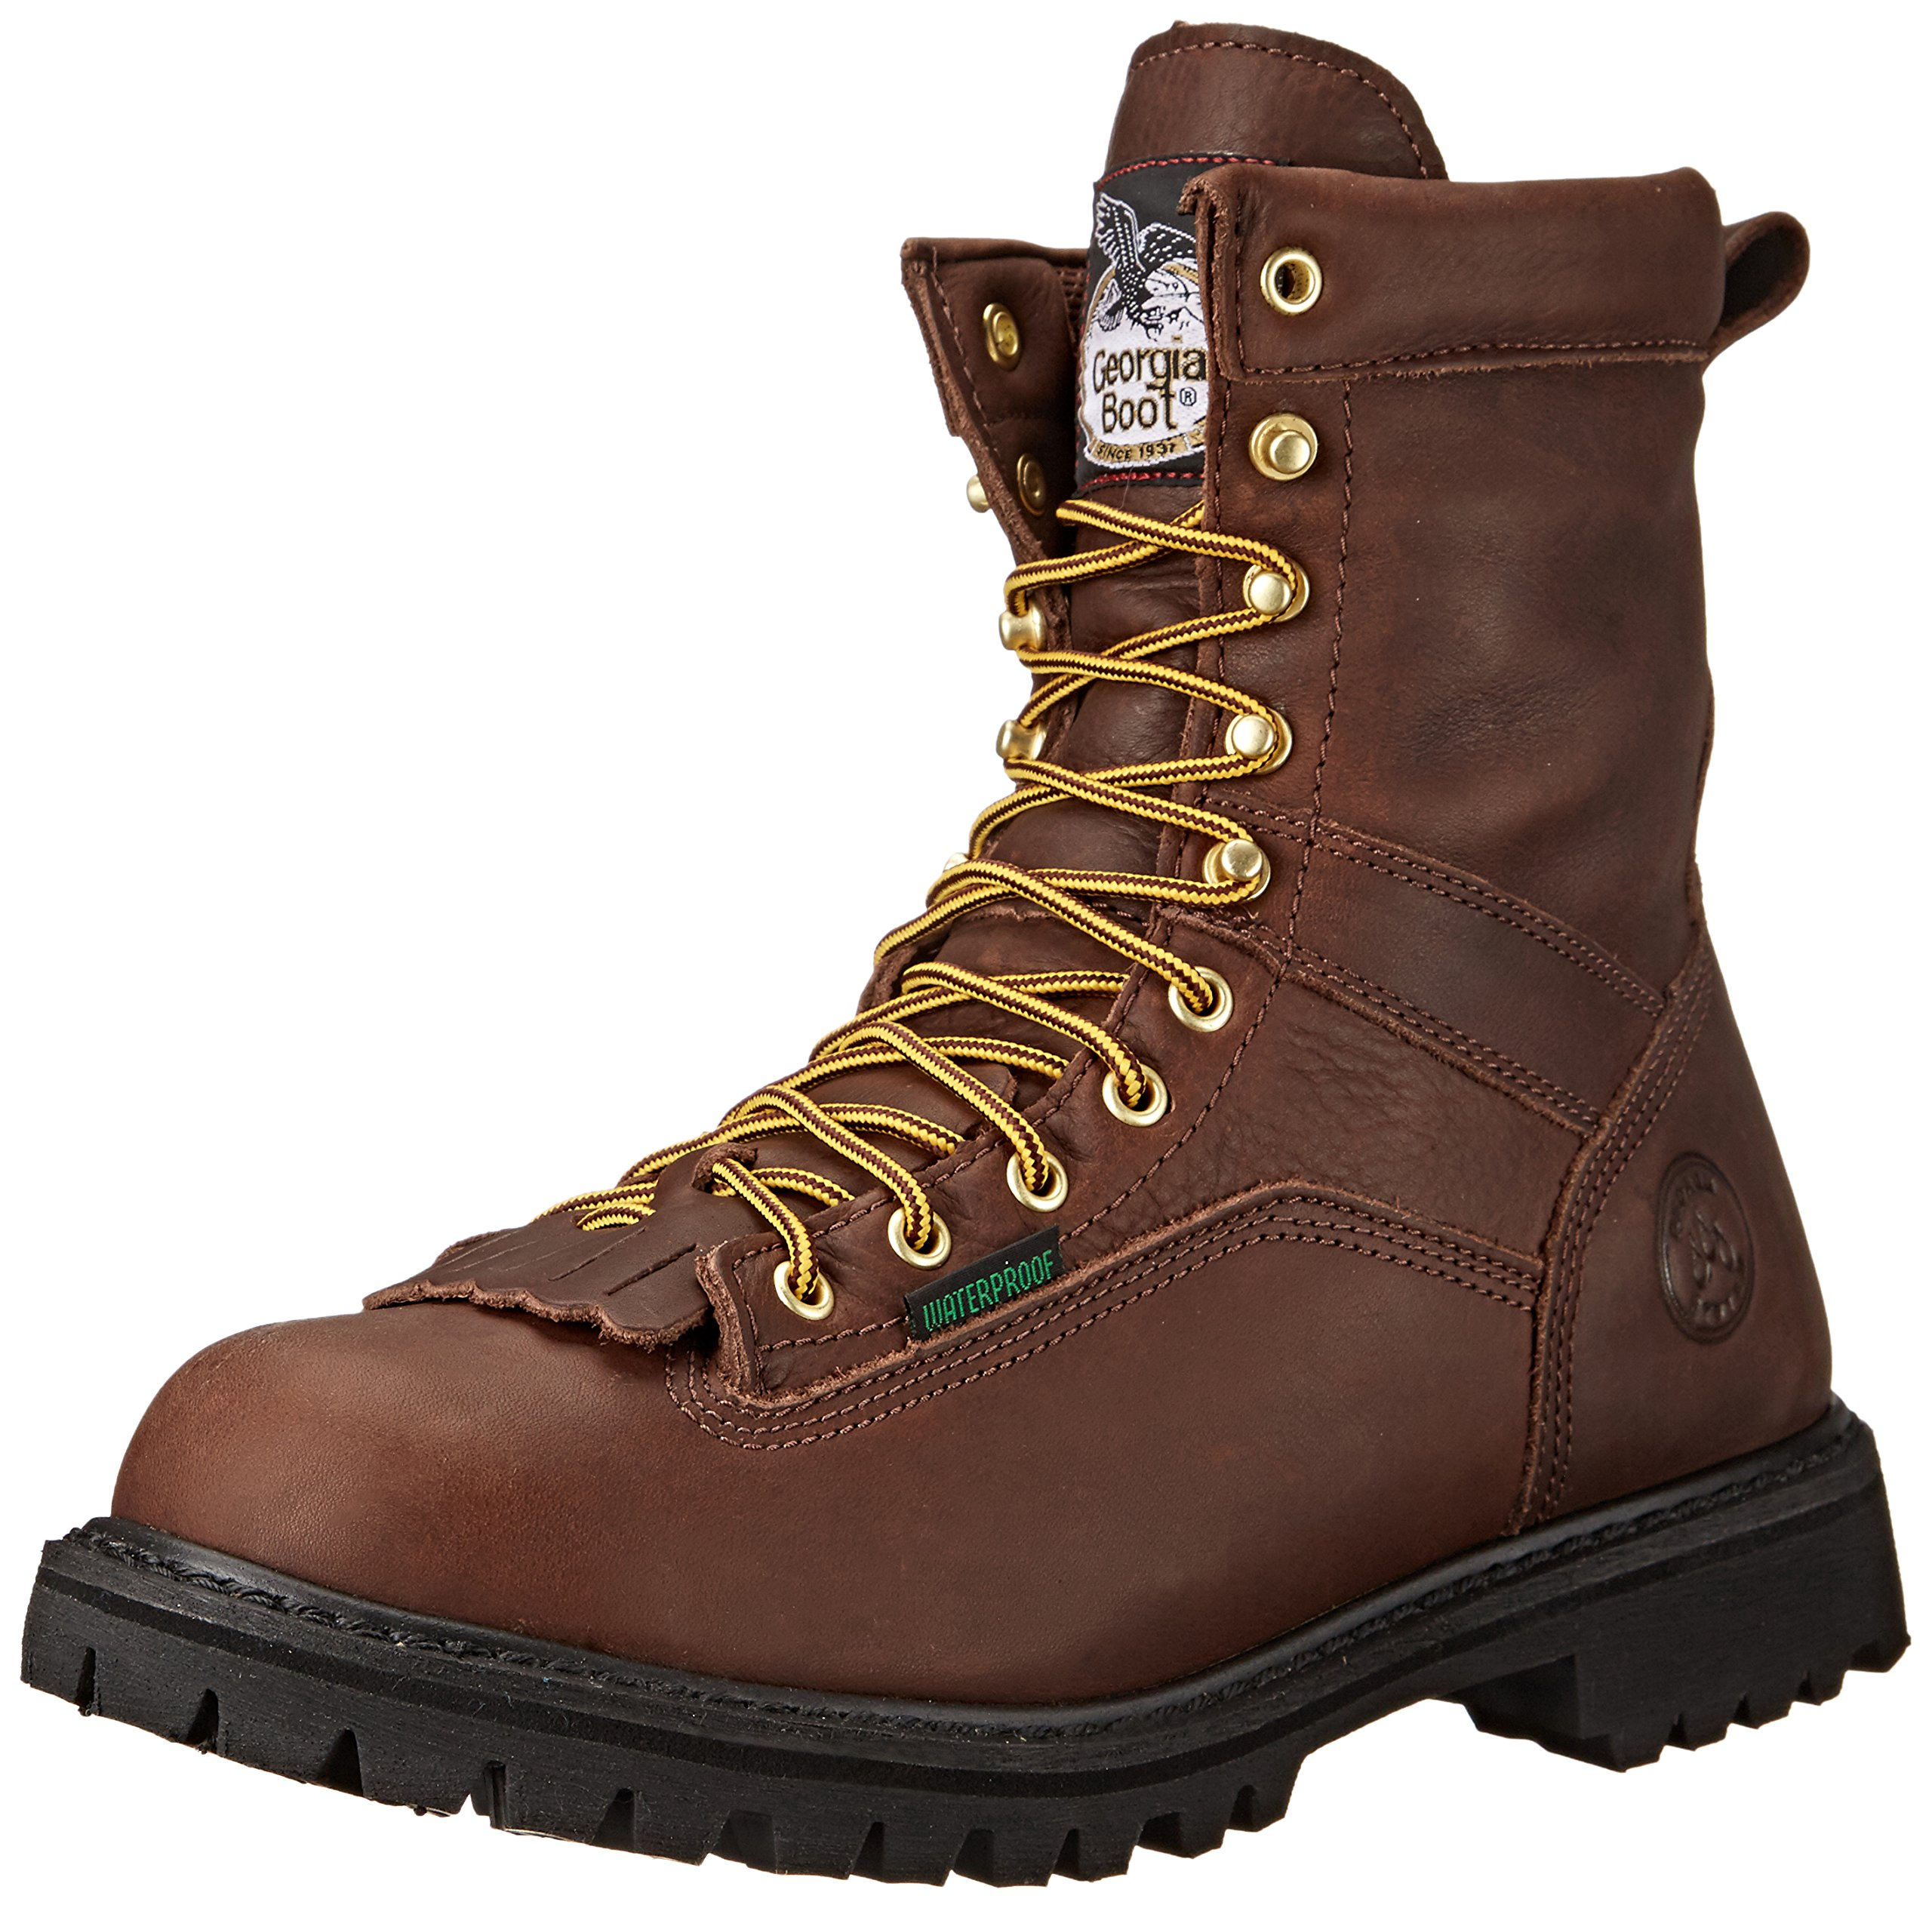 Georgia Men's G8041 Logger M Work Boot, Tumbled Chocolate, 14 W US